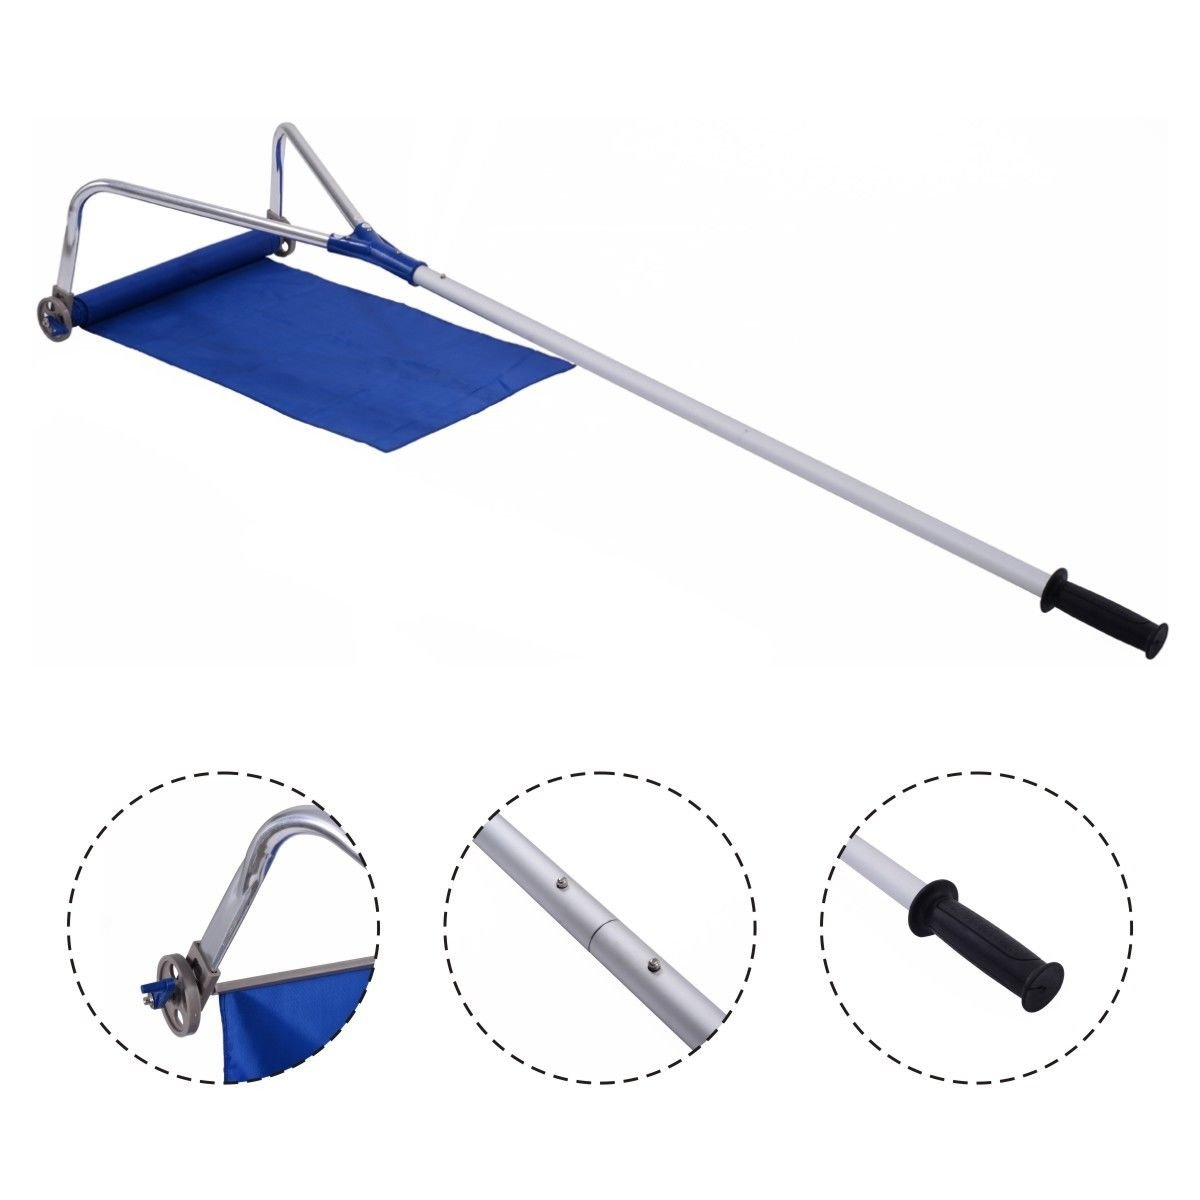 New Lightweight Roof Rake Snow Removal Tool 20FT Adjustable Telescoping Handle New